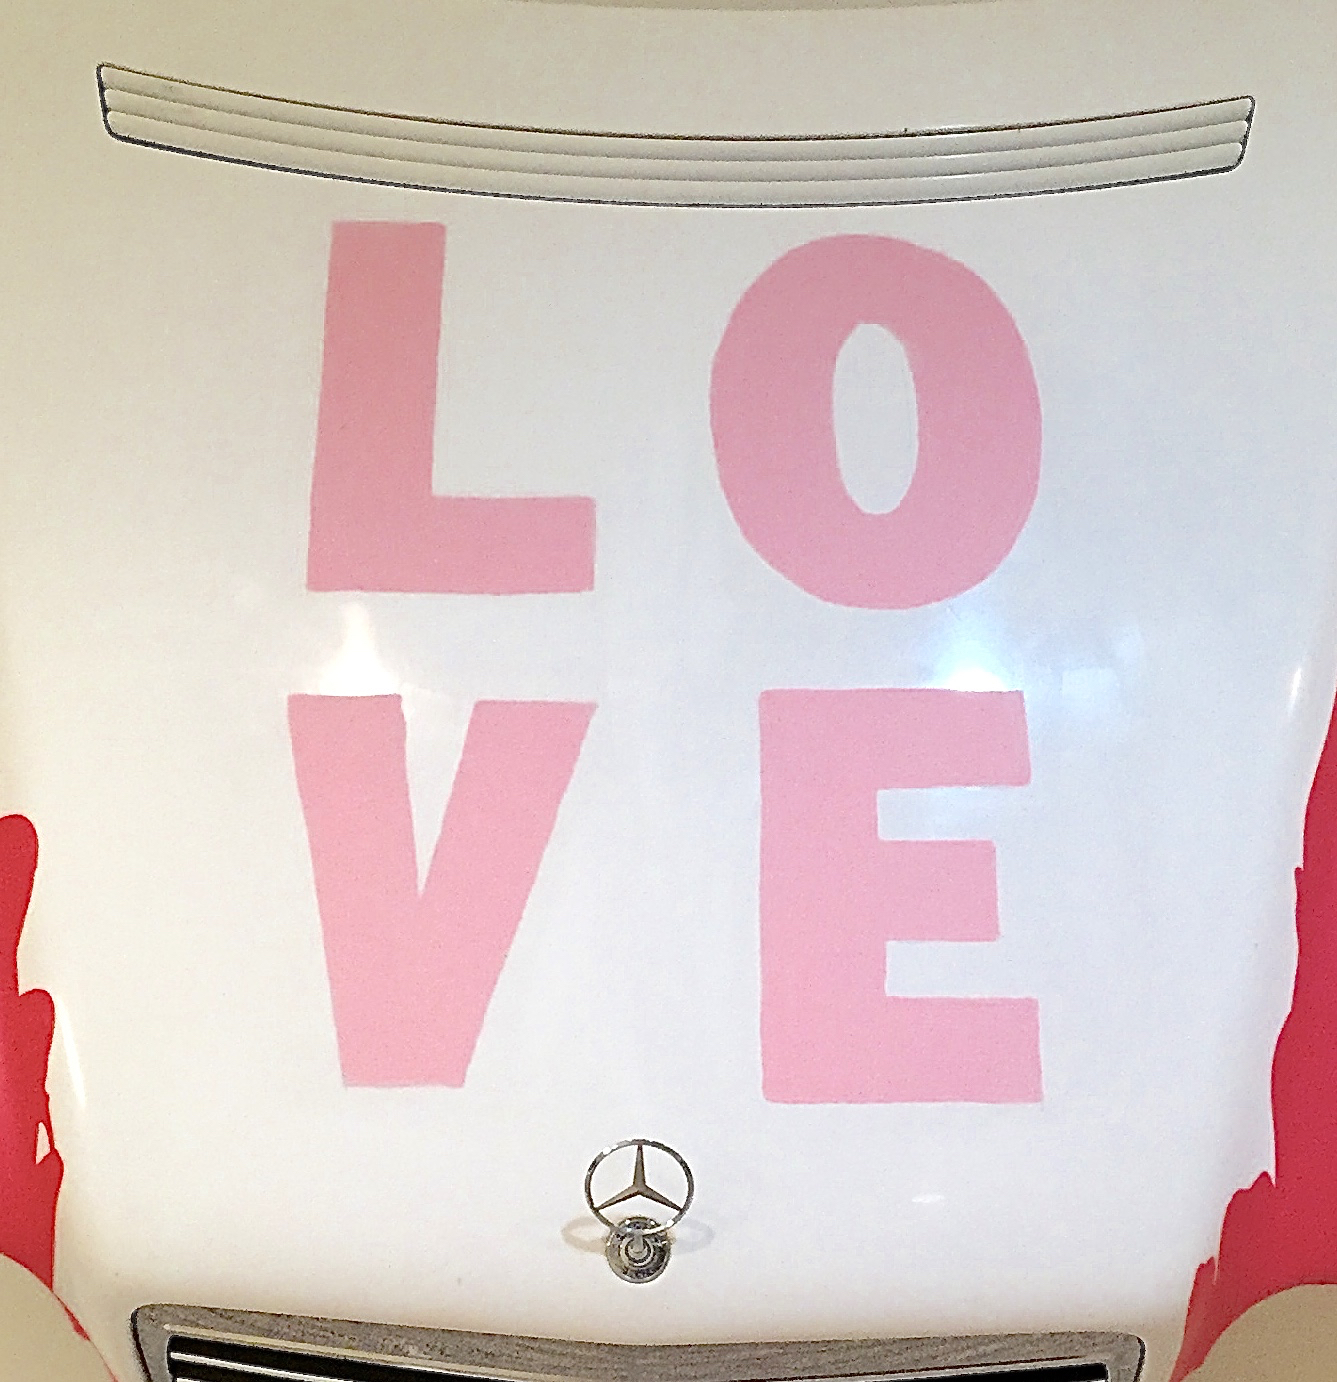 scott hughes art ONE LOVE Pink Mercedes LOVE detail middle